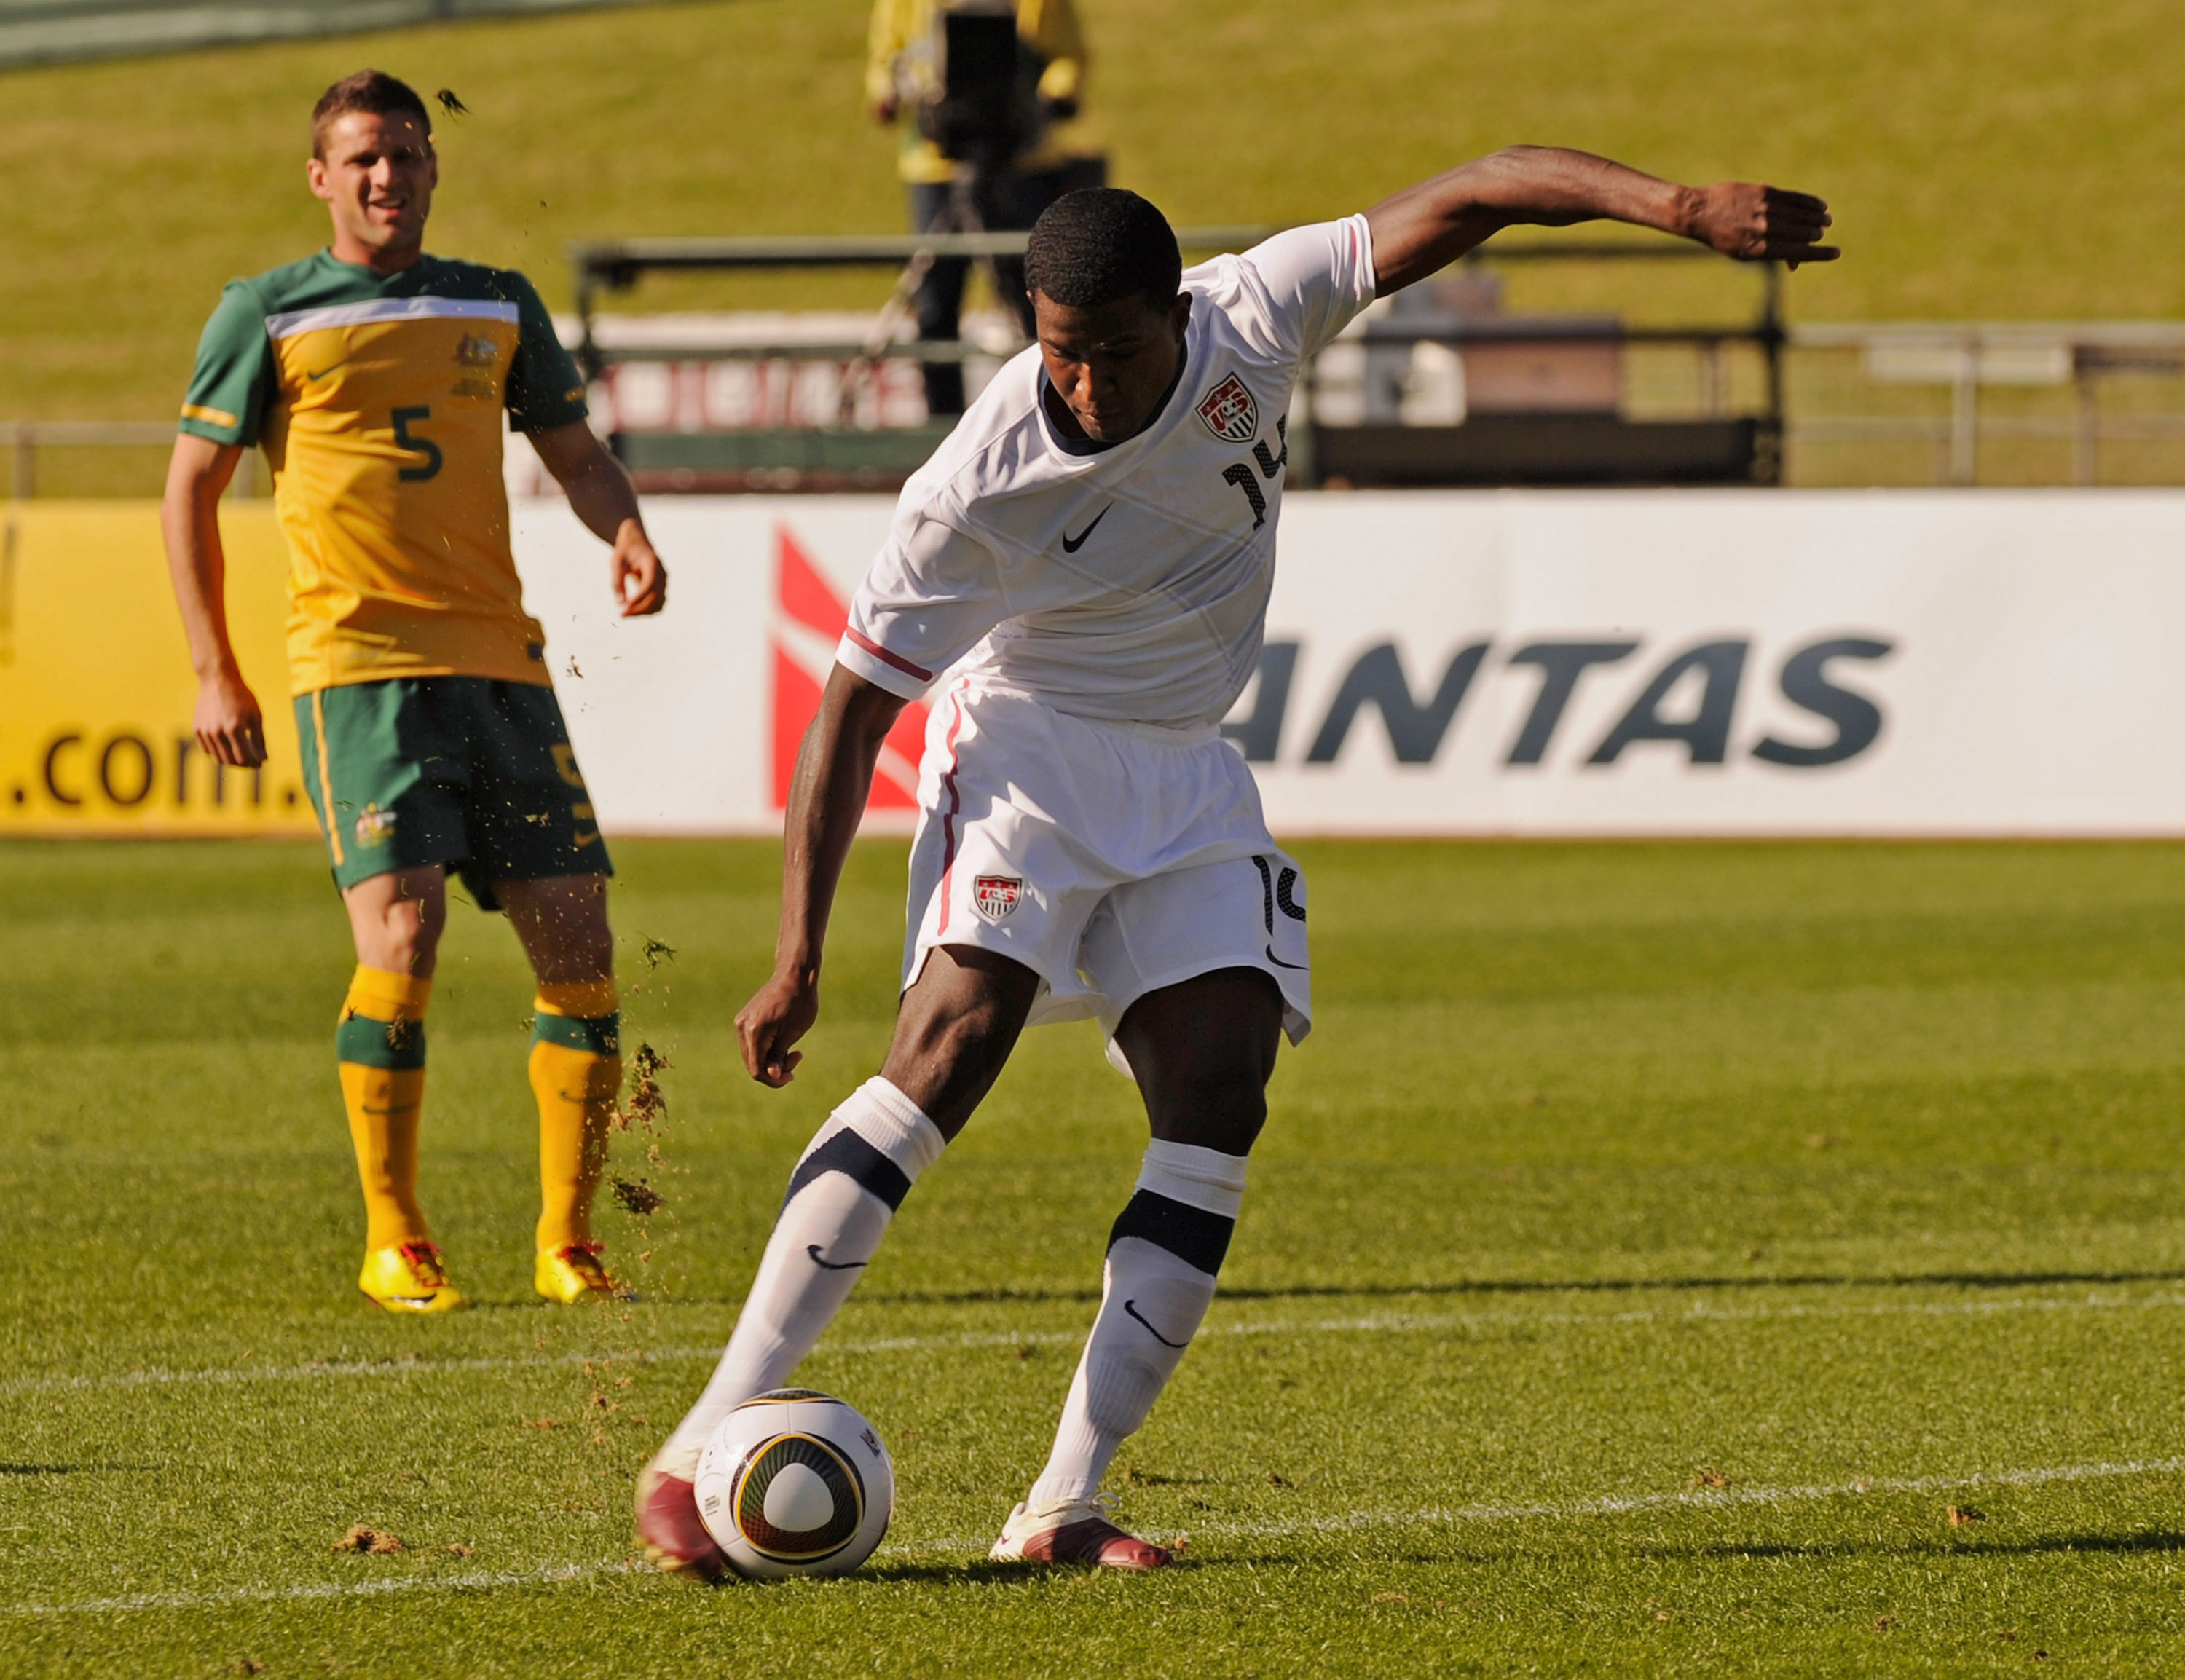 ROODEPOORT, SOUTH AFRICA - JUNE 05:  Edson Buddle #14 of USA scores a goal against Australia during first half of the 2010 FIFA World Cup Pre-Tournament match between the Australian Socceroos and the United States of America at Ruimsig Stadium on June 5,